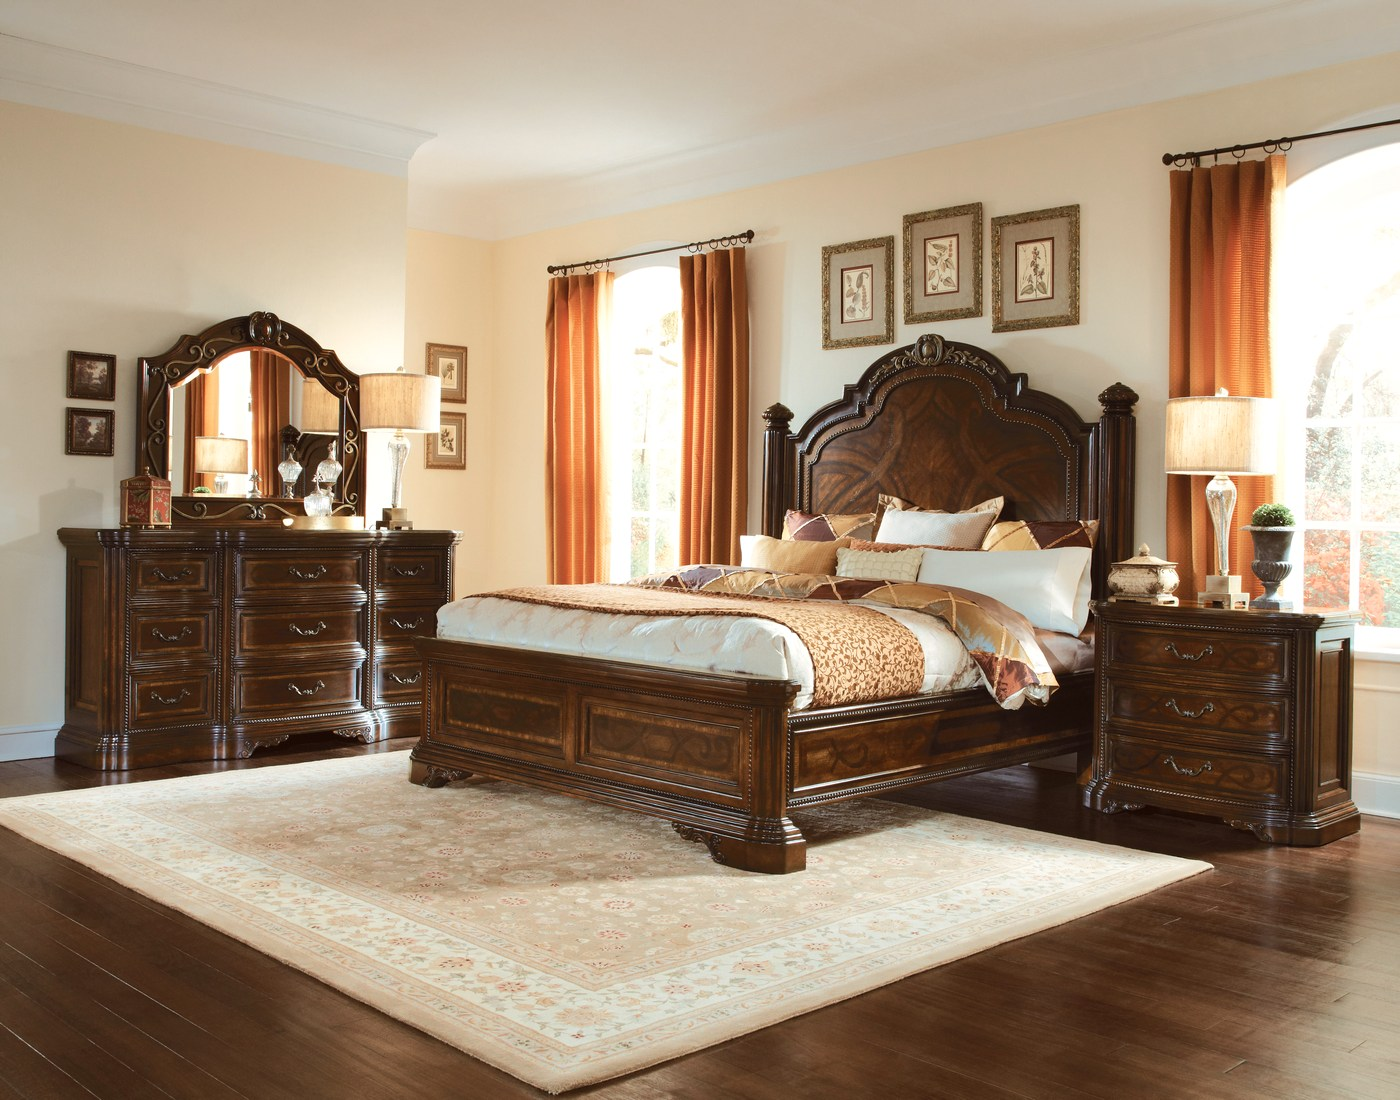 Valencia carved wood traditional bedroom furniture set 209000 for Bedroom dresser sets